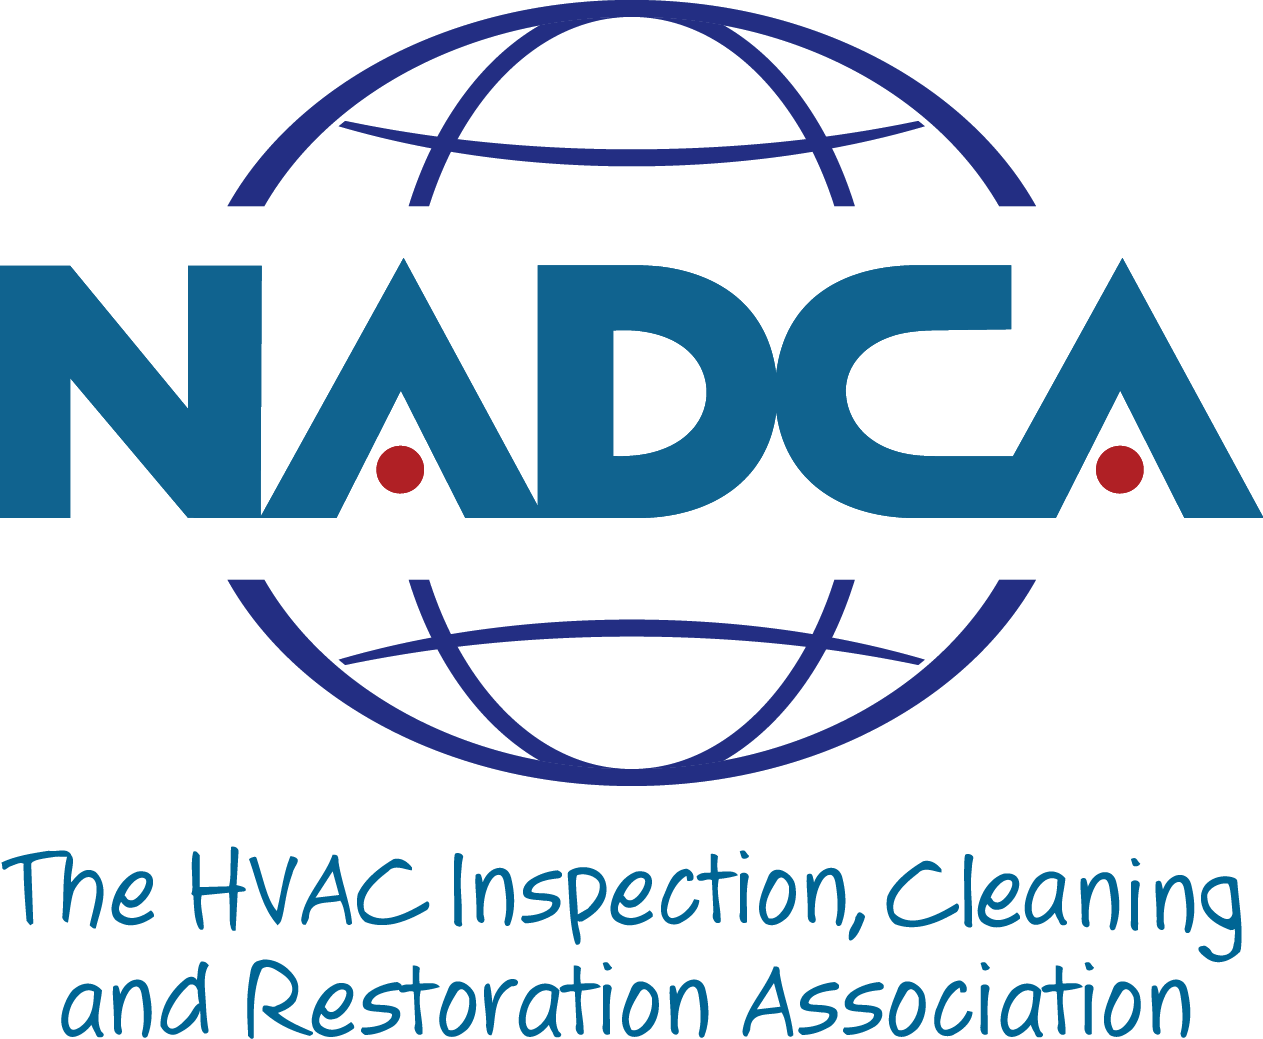 The HVAC Inspection, Cleaning and Restoration Association